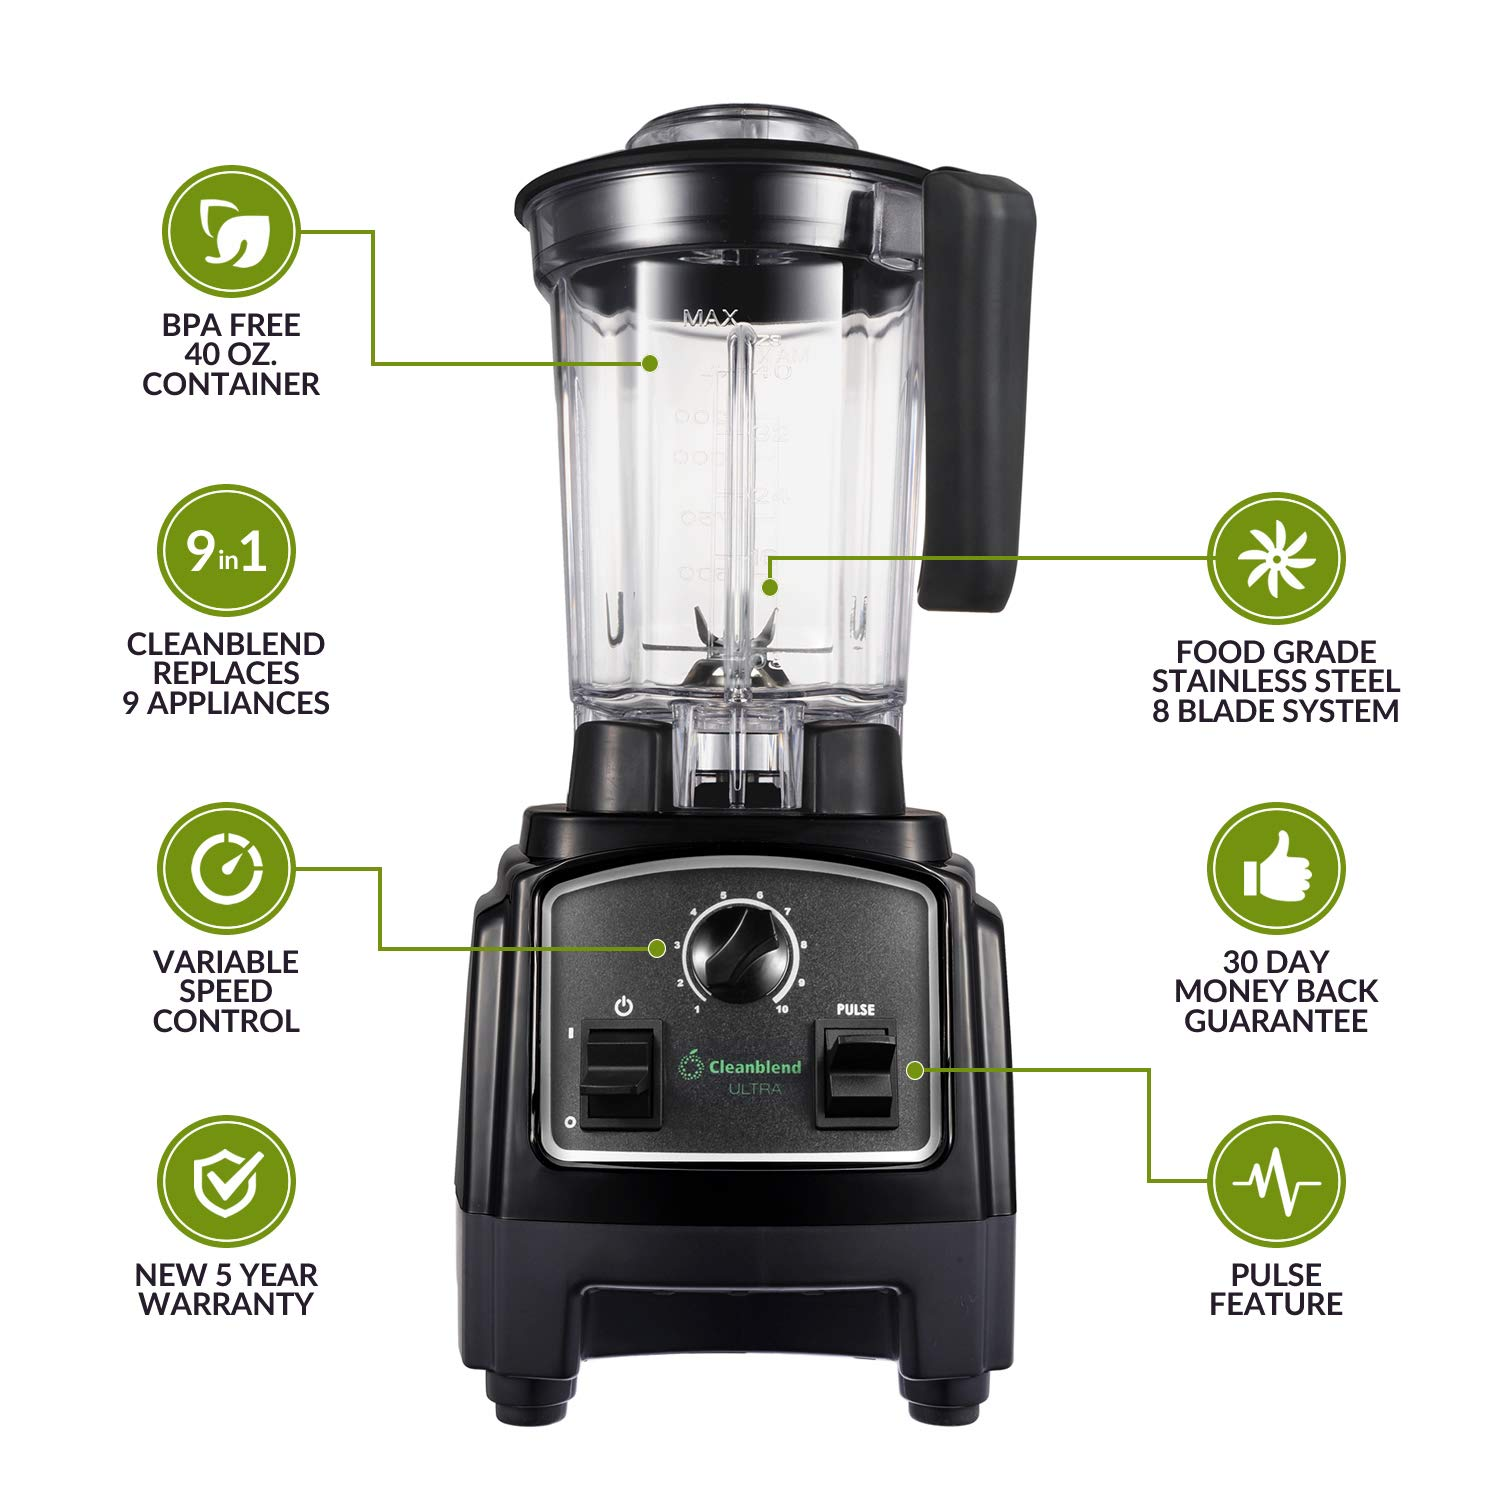 Cleanblend ULTRA A Low Profile Countertop Blender With A BPA Free 40 oz. Container, A Stainless Steel 8 Blade System and stainless steel drivetrain. Great for smoothies, nut butters and mixing